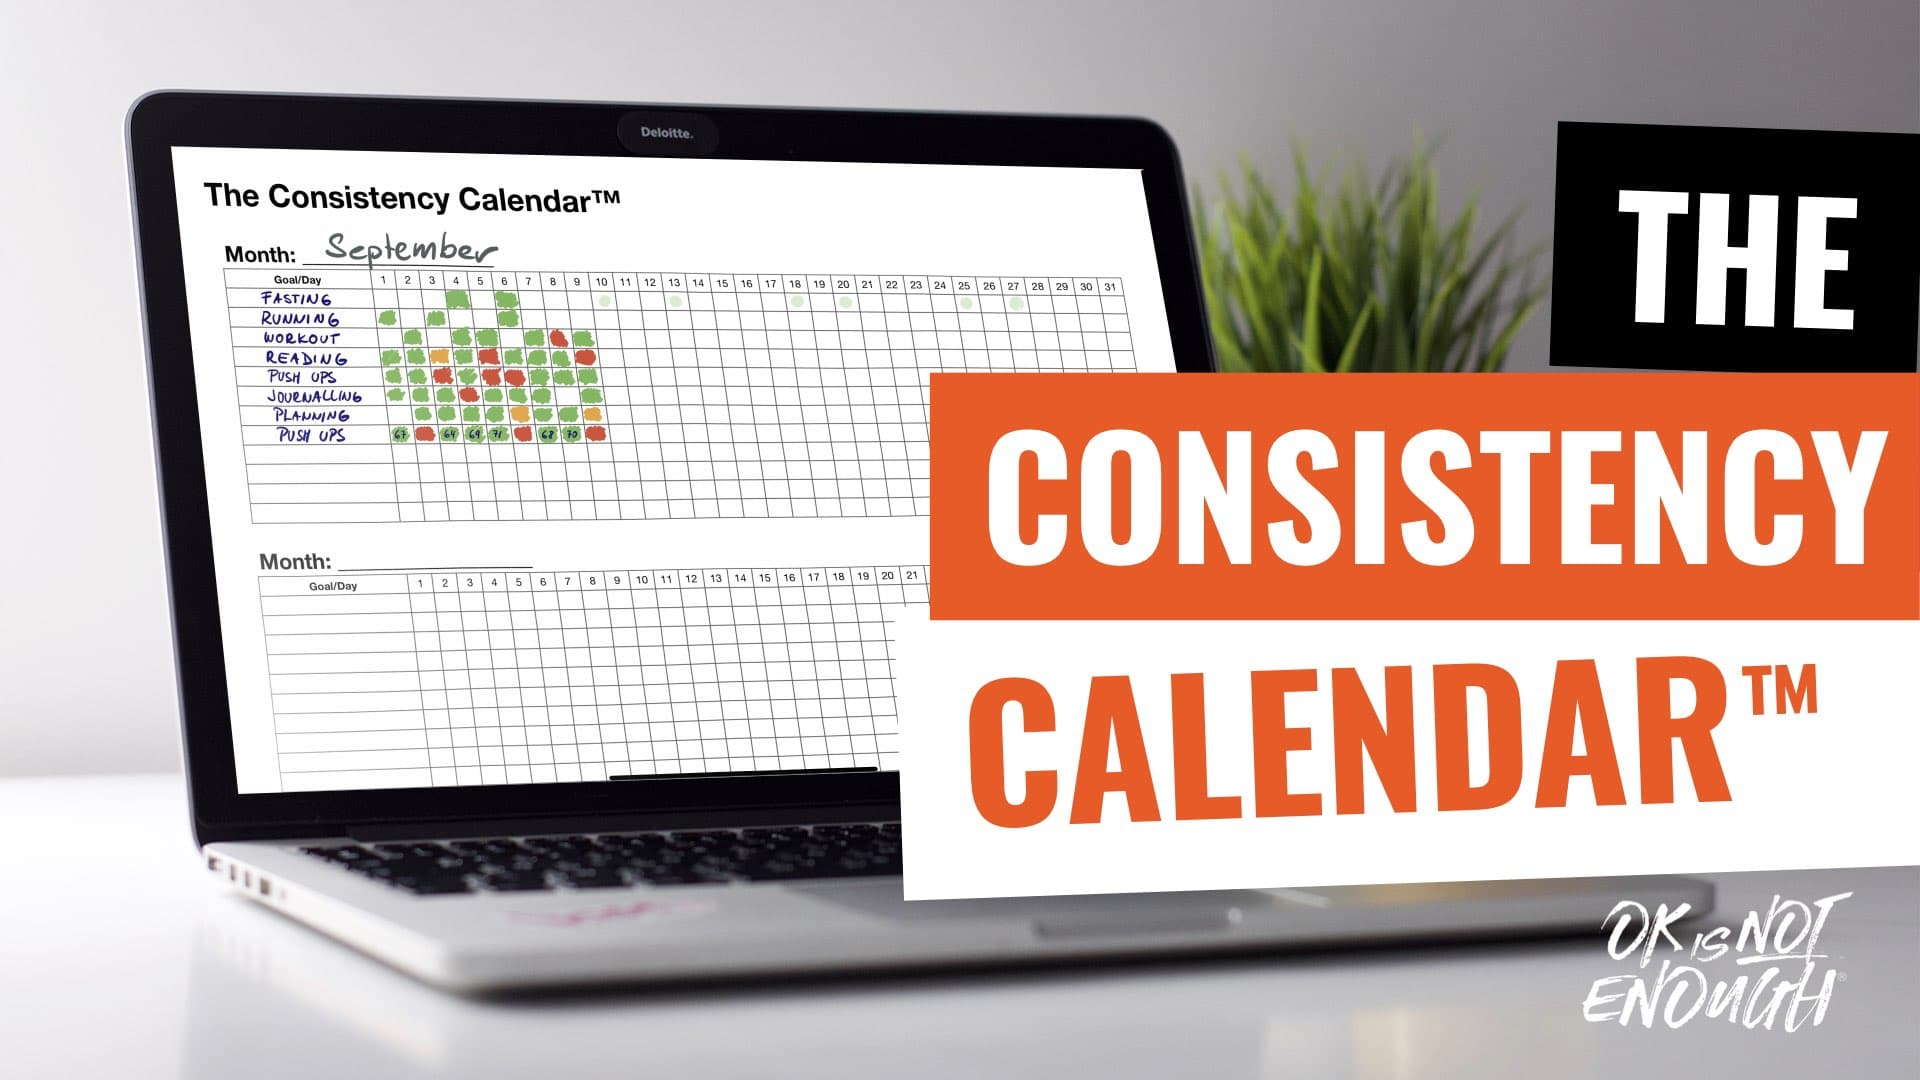 Have You Tried The Consistency Calendar?